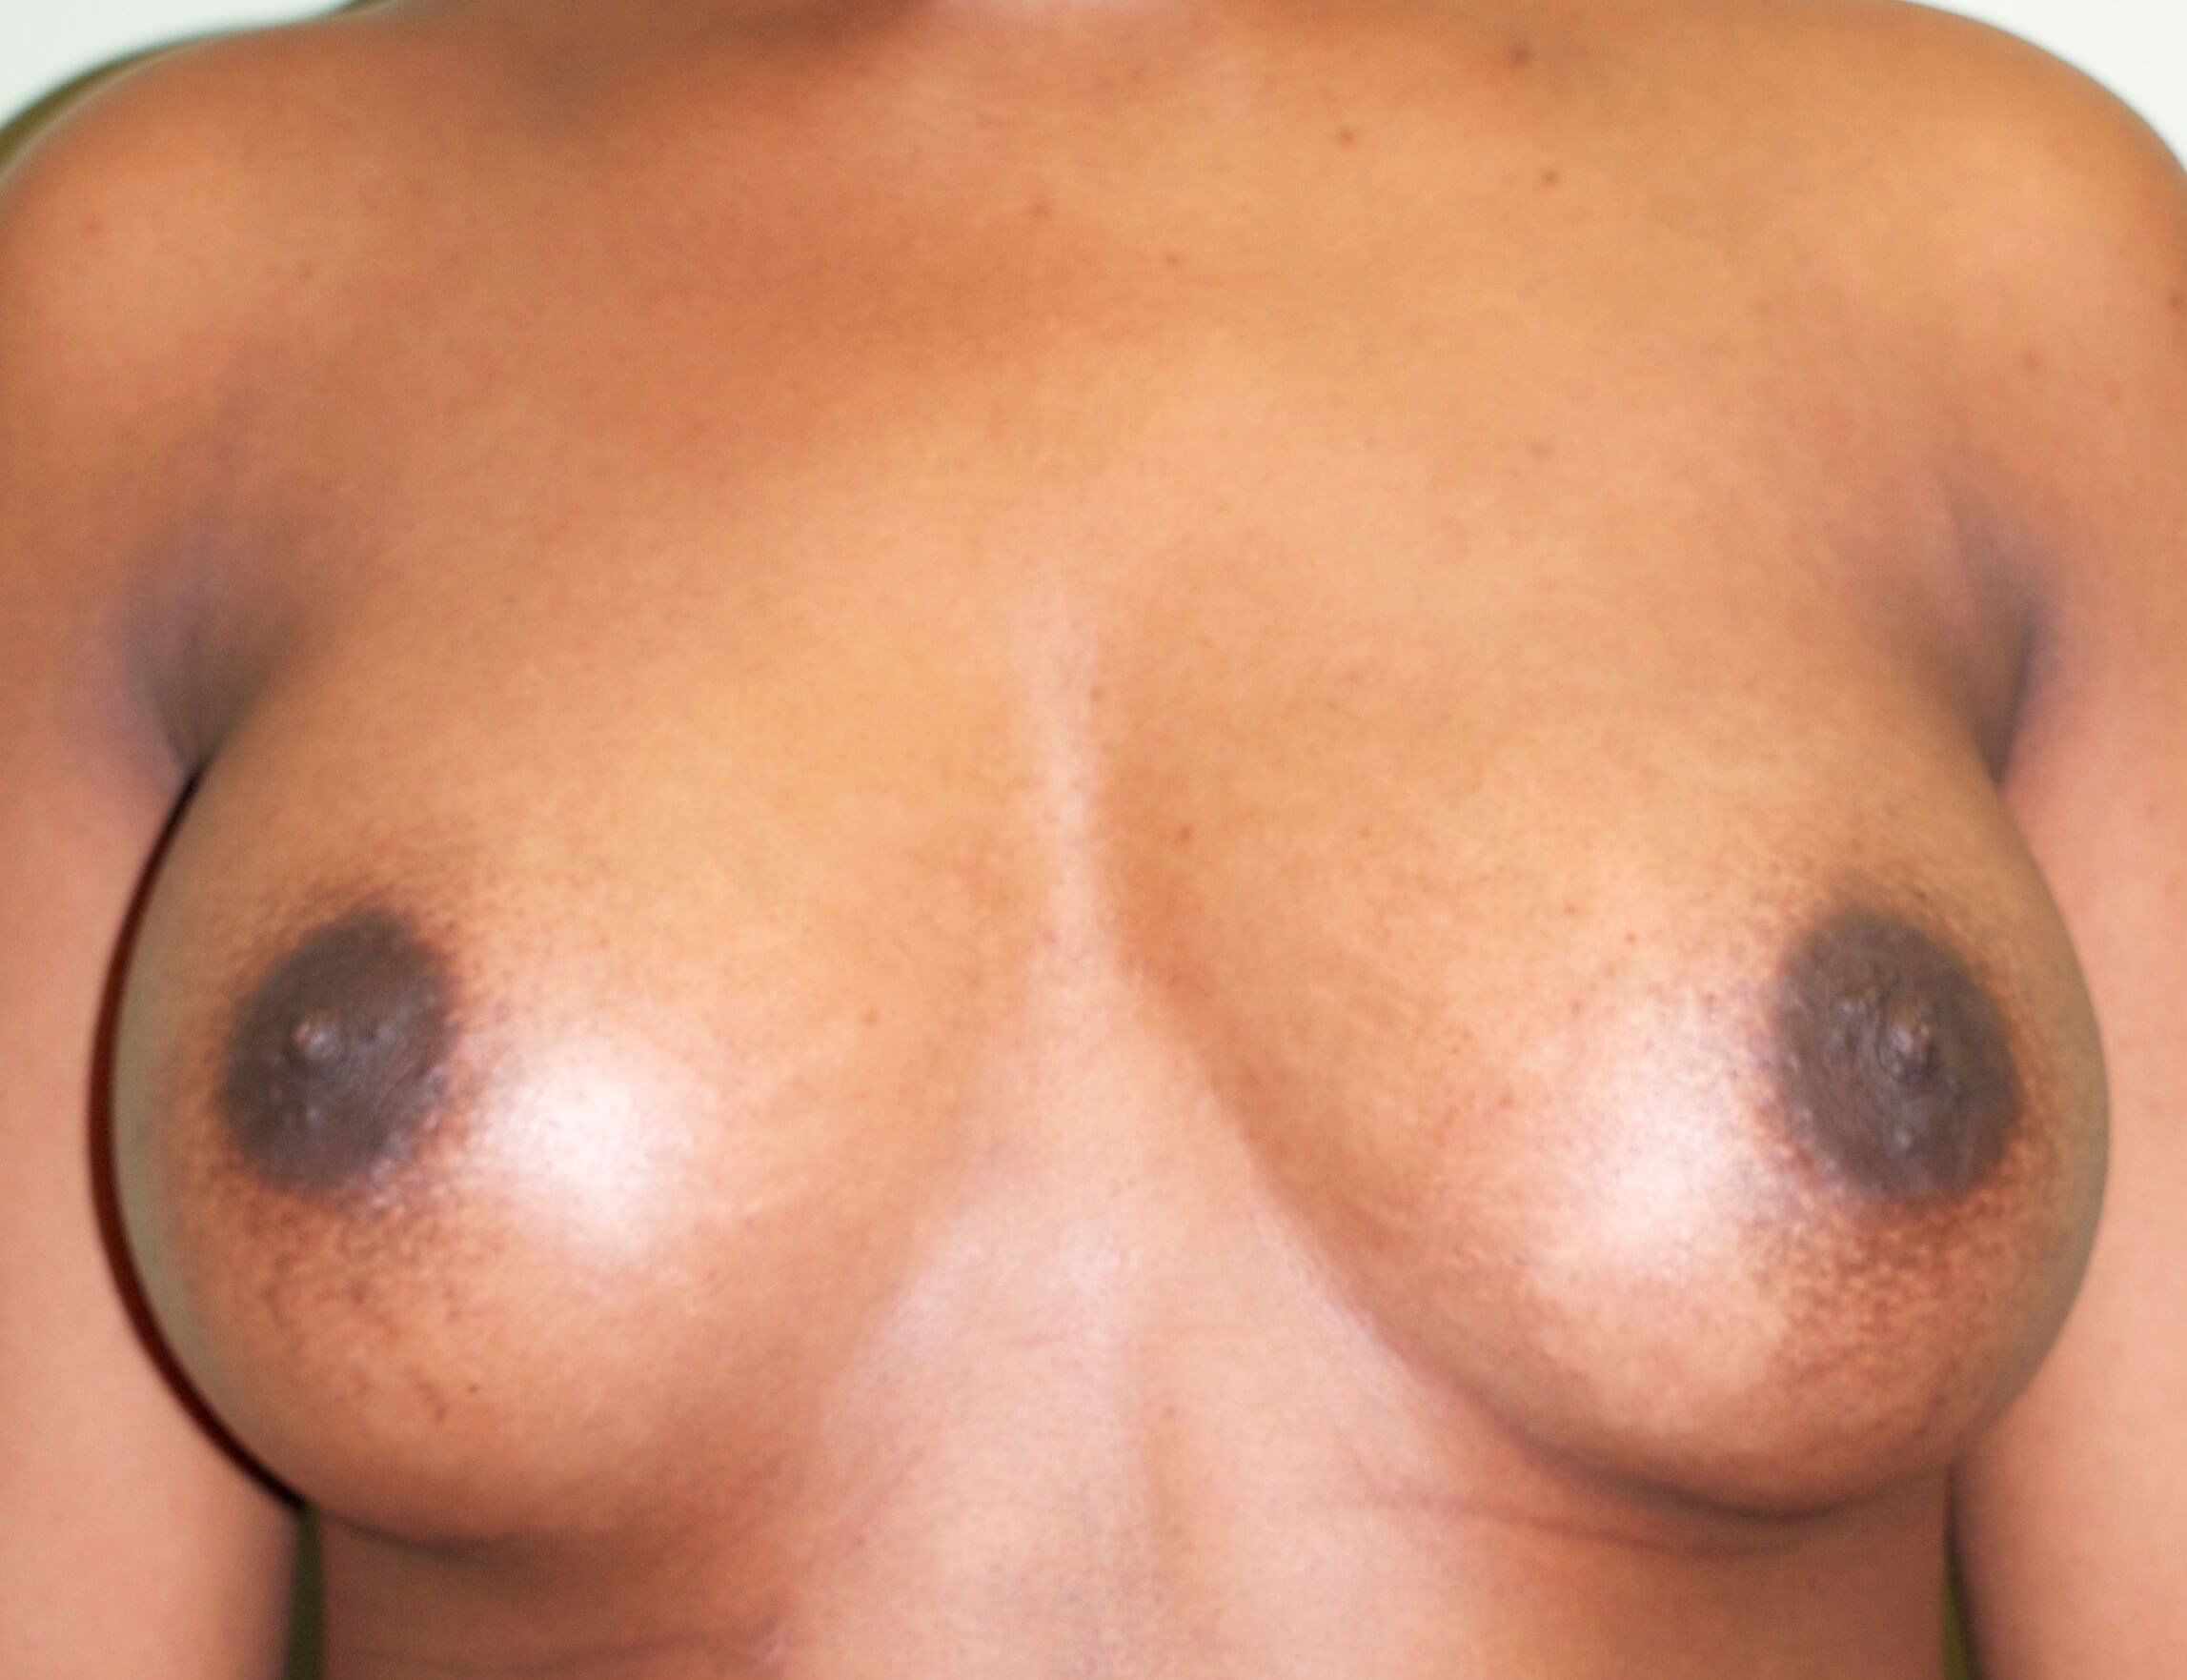 Saline Implants/Frontal View After